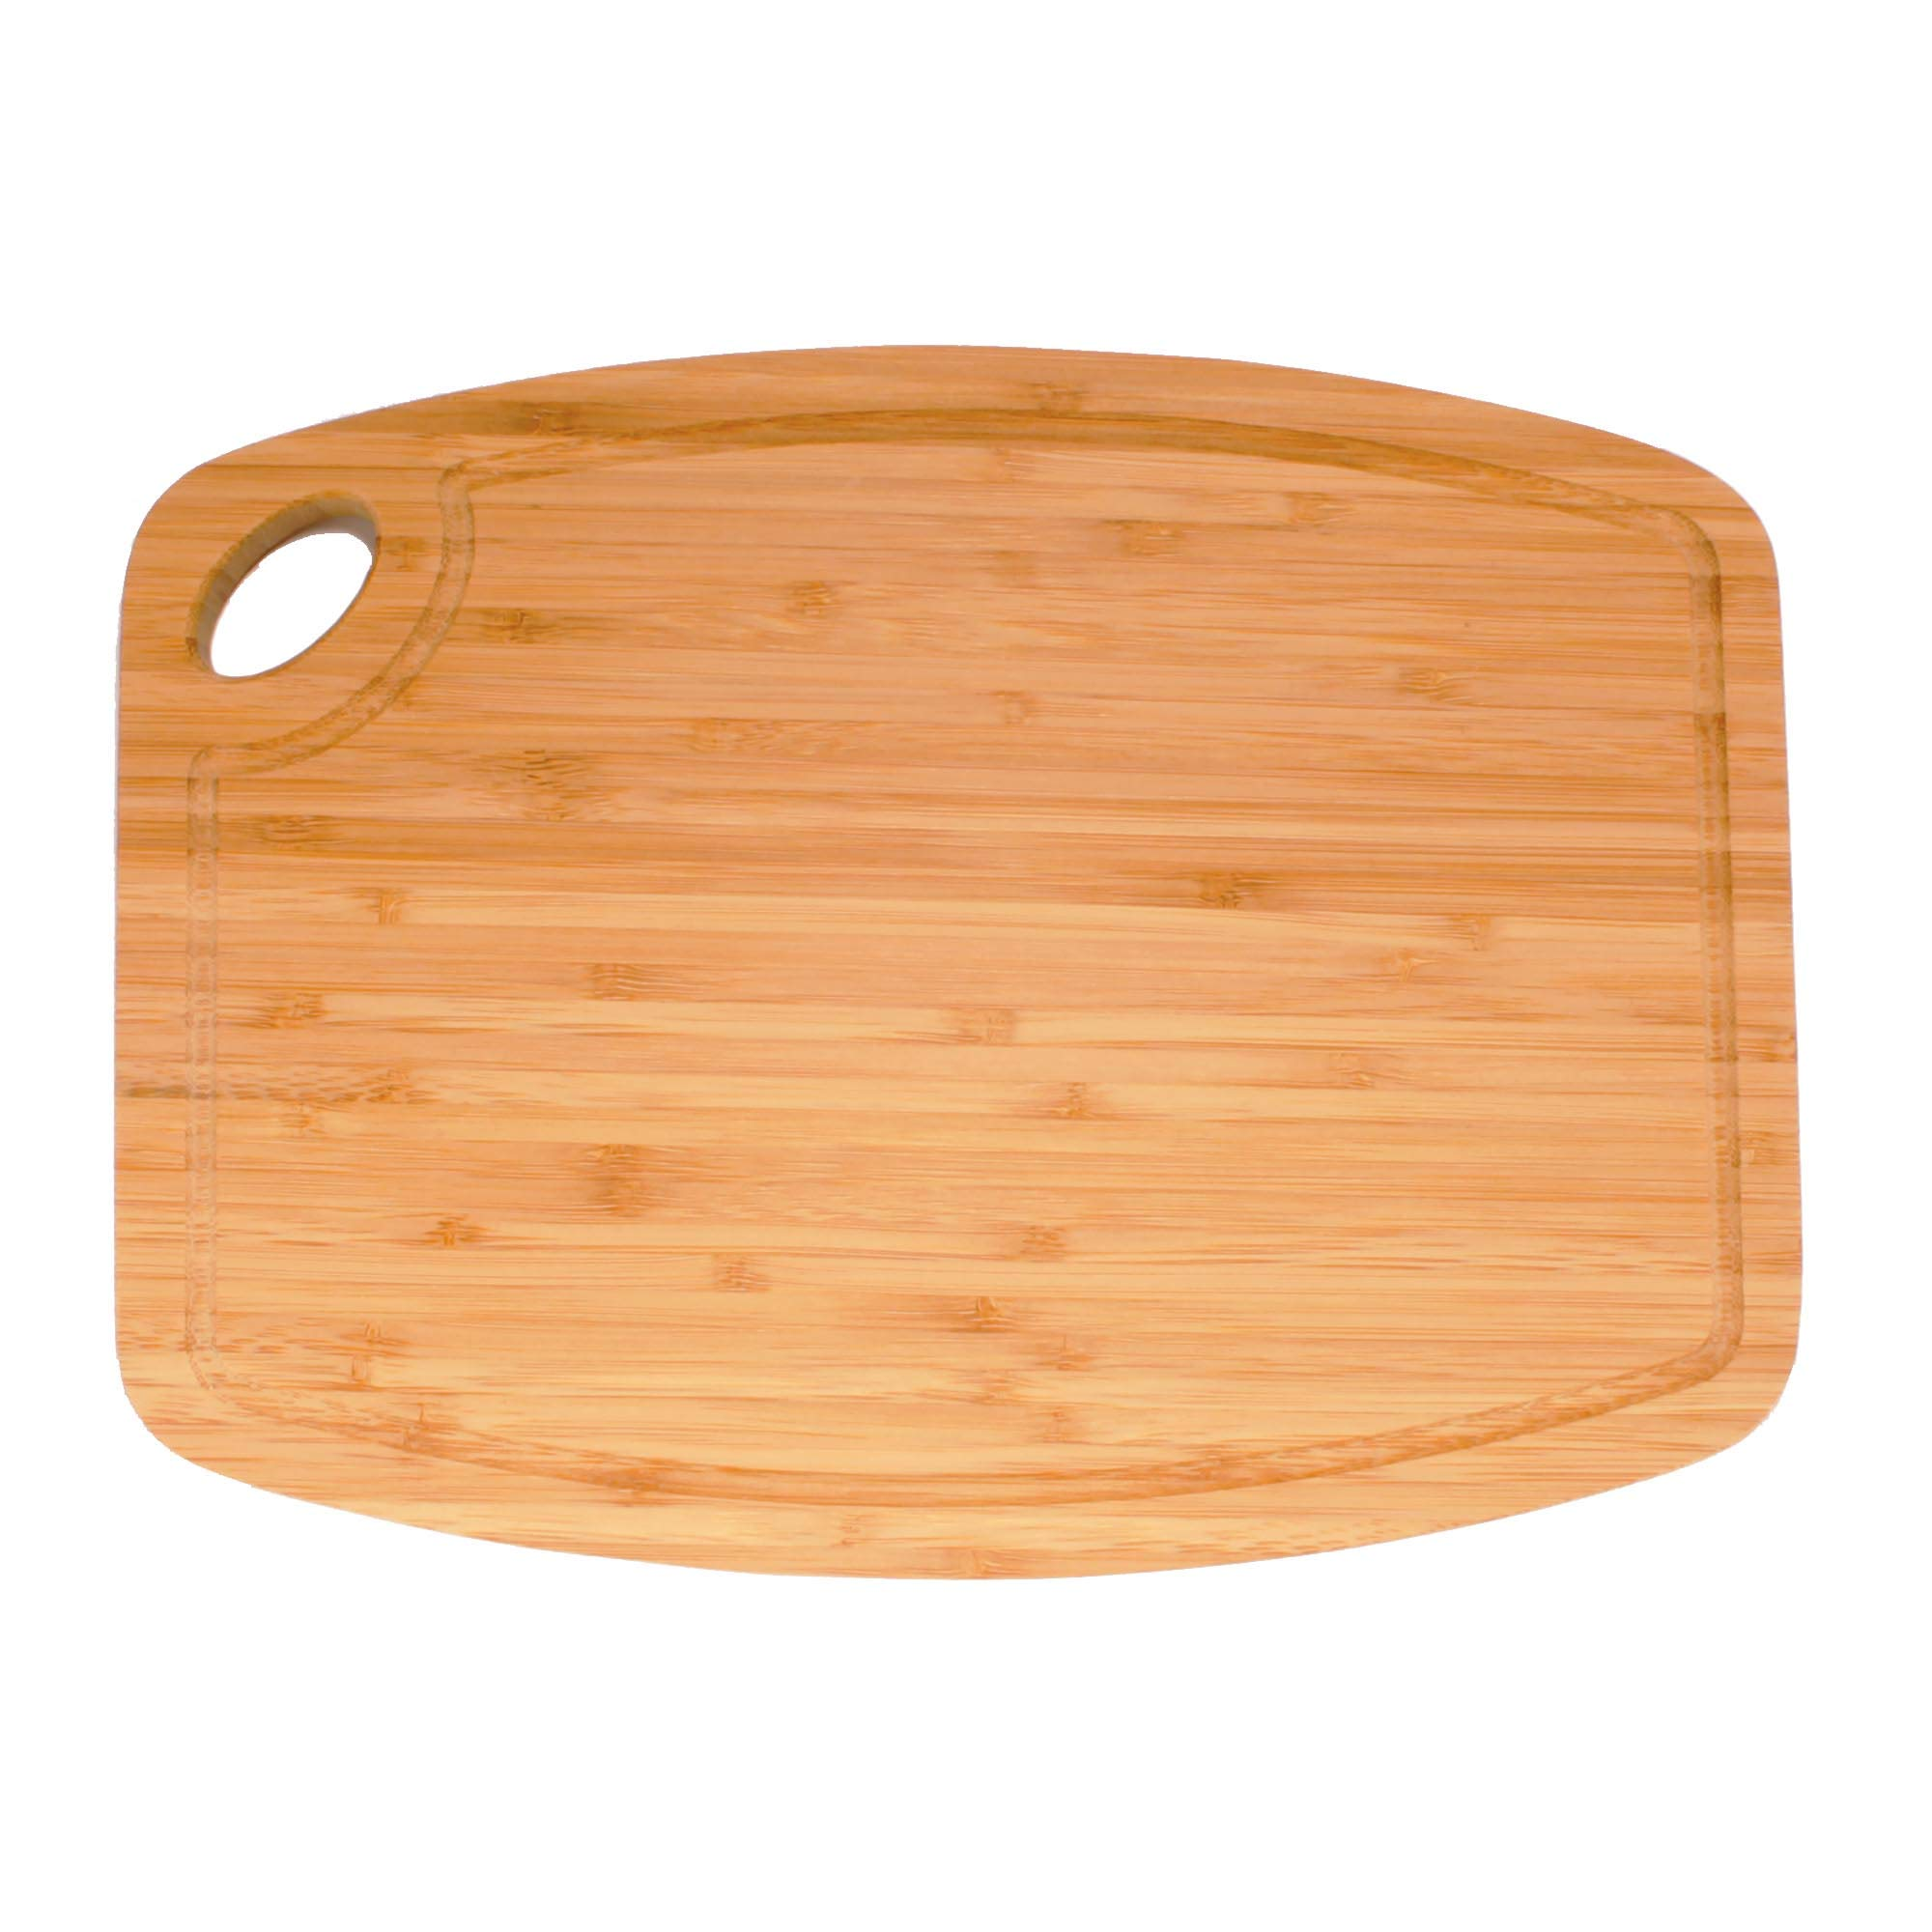 Bamboo Bar-Style Curved Edge Cutting Board - 11.75'' x 8.63'' x 0.75'' - 30 Pieces